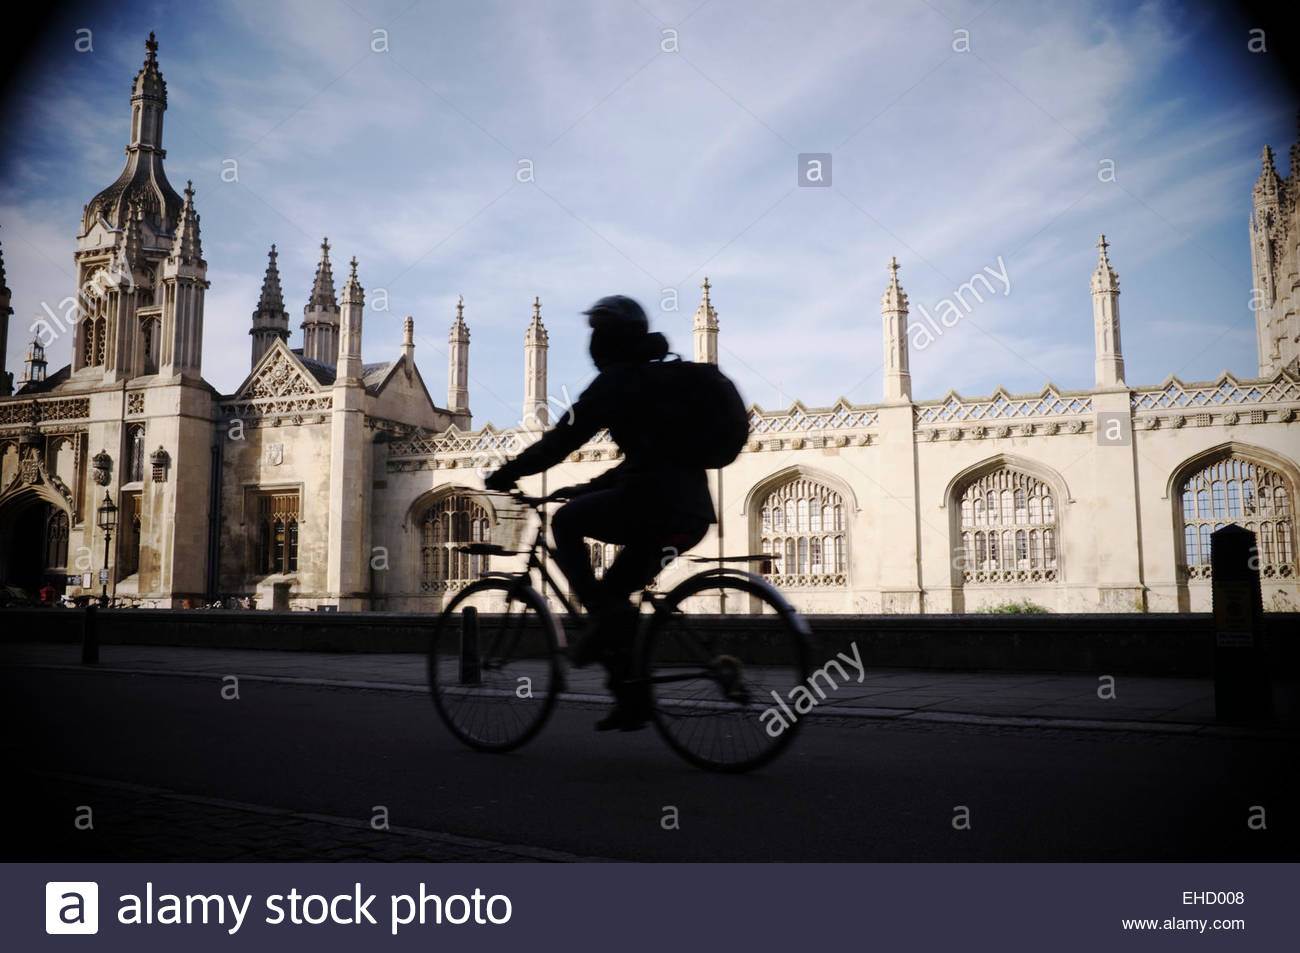 A cyclist travels along King's Parade, with King's College providing a backdrop. Cambridge, Cambridgeshire, - Stock Image